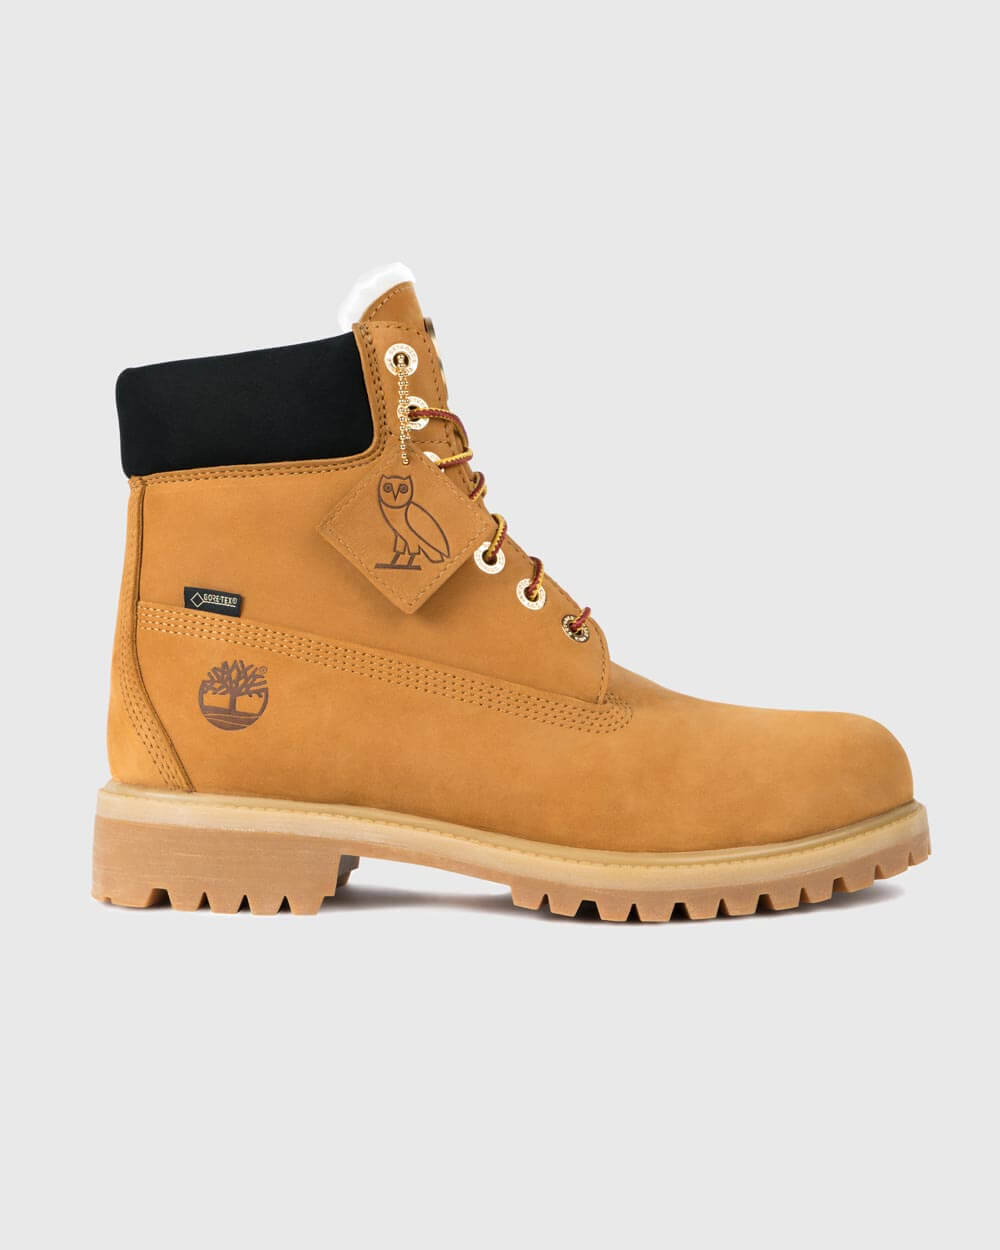 OVO x TIMBERLAND 6-INCH - WHEAT – October s Very Own Online US 02cda8fd4